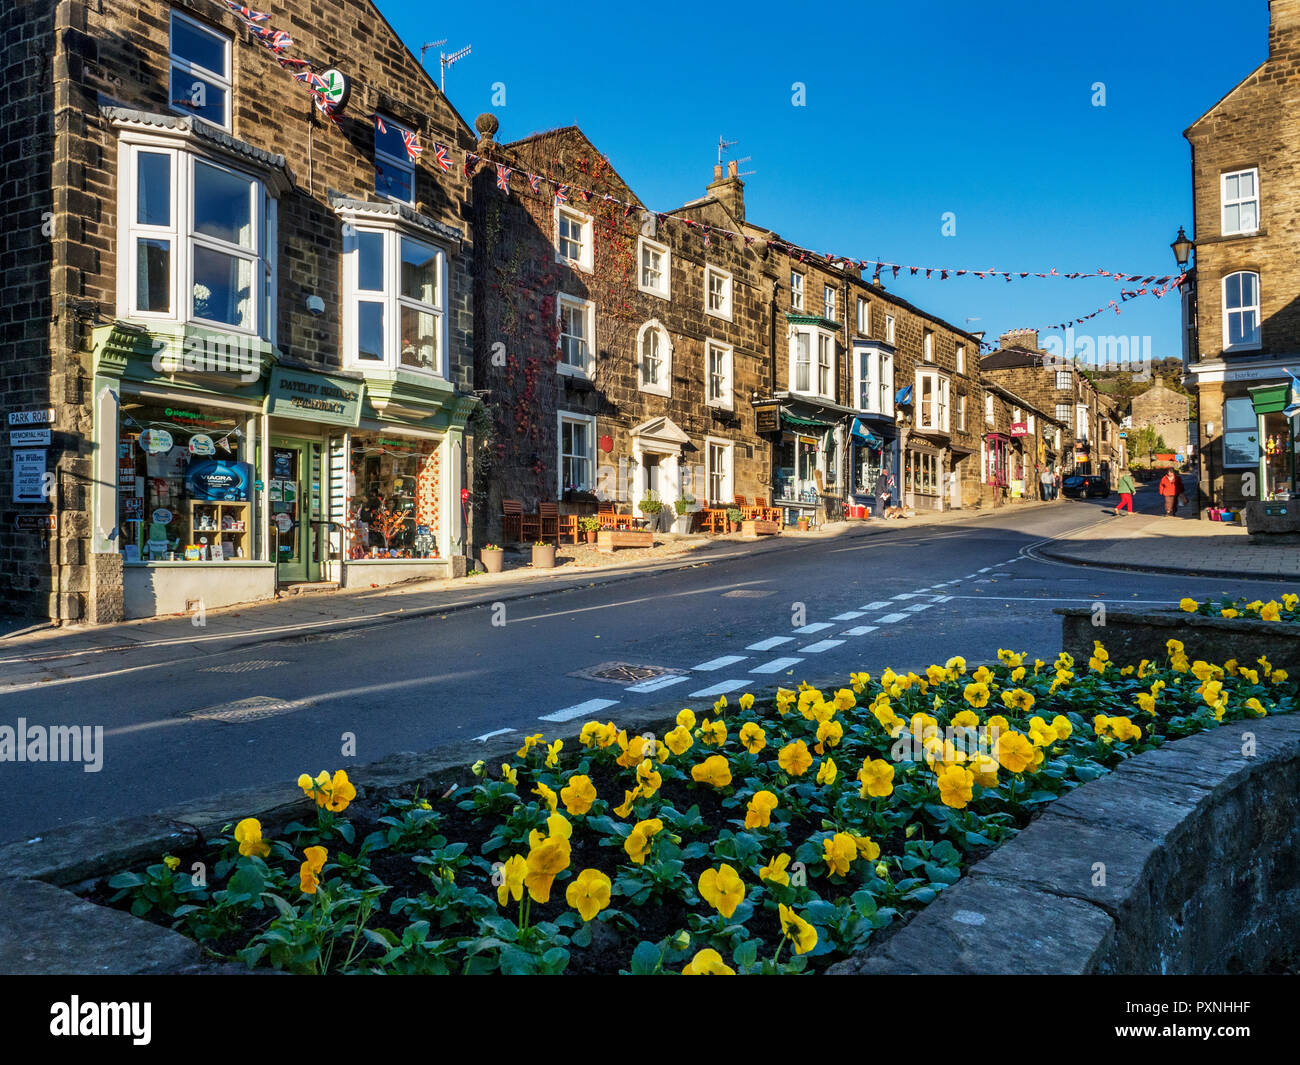 Winter pansies in flower and shops on the High Street at Pateley Bridge North Yorkshire England - Stock Image